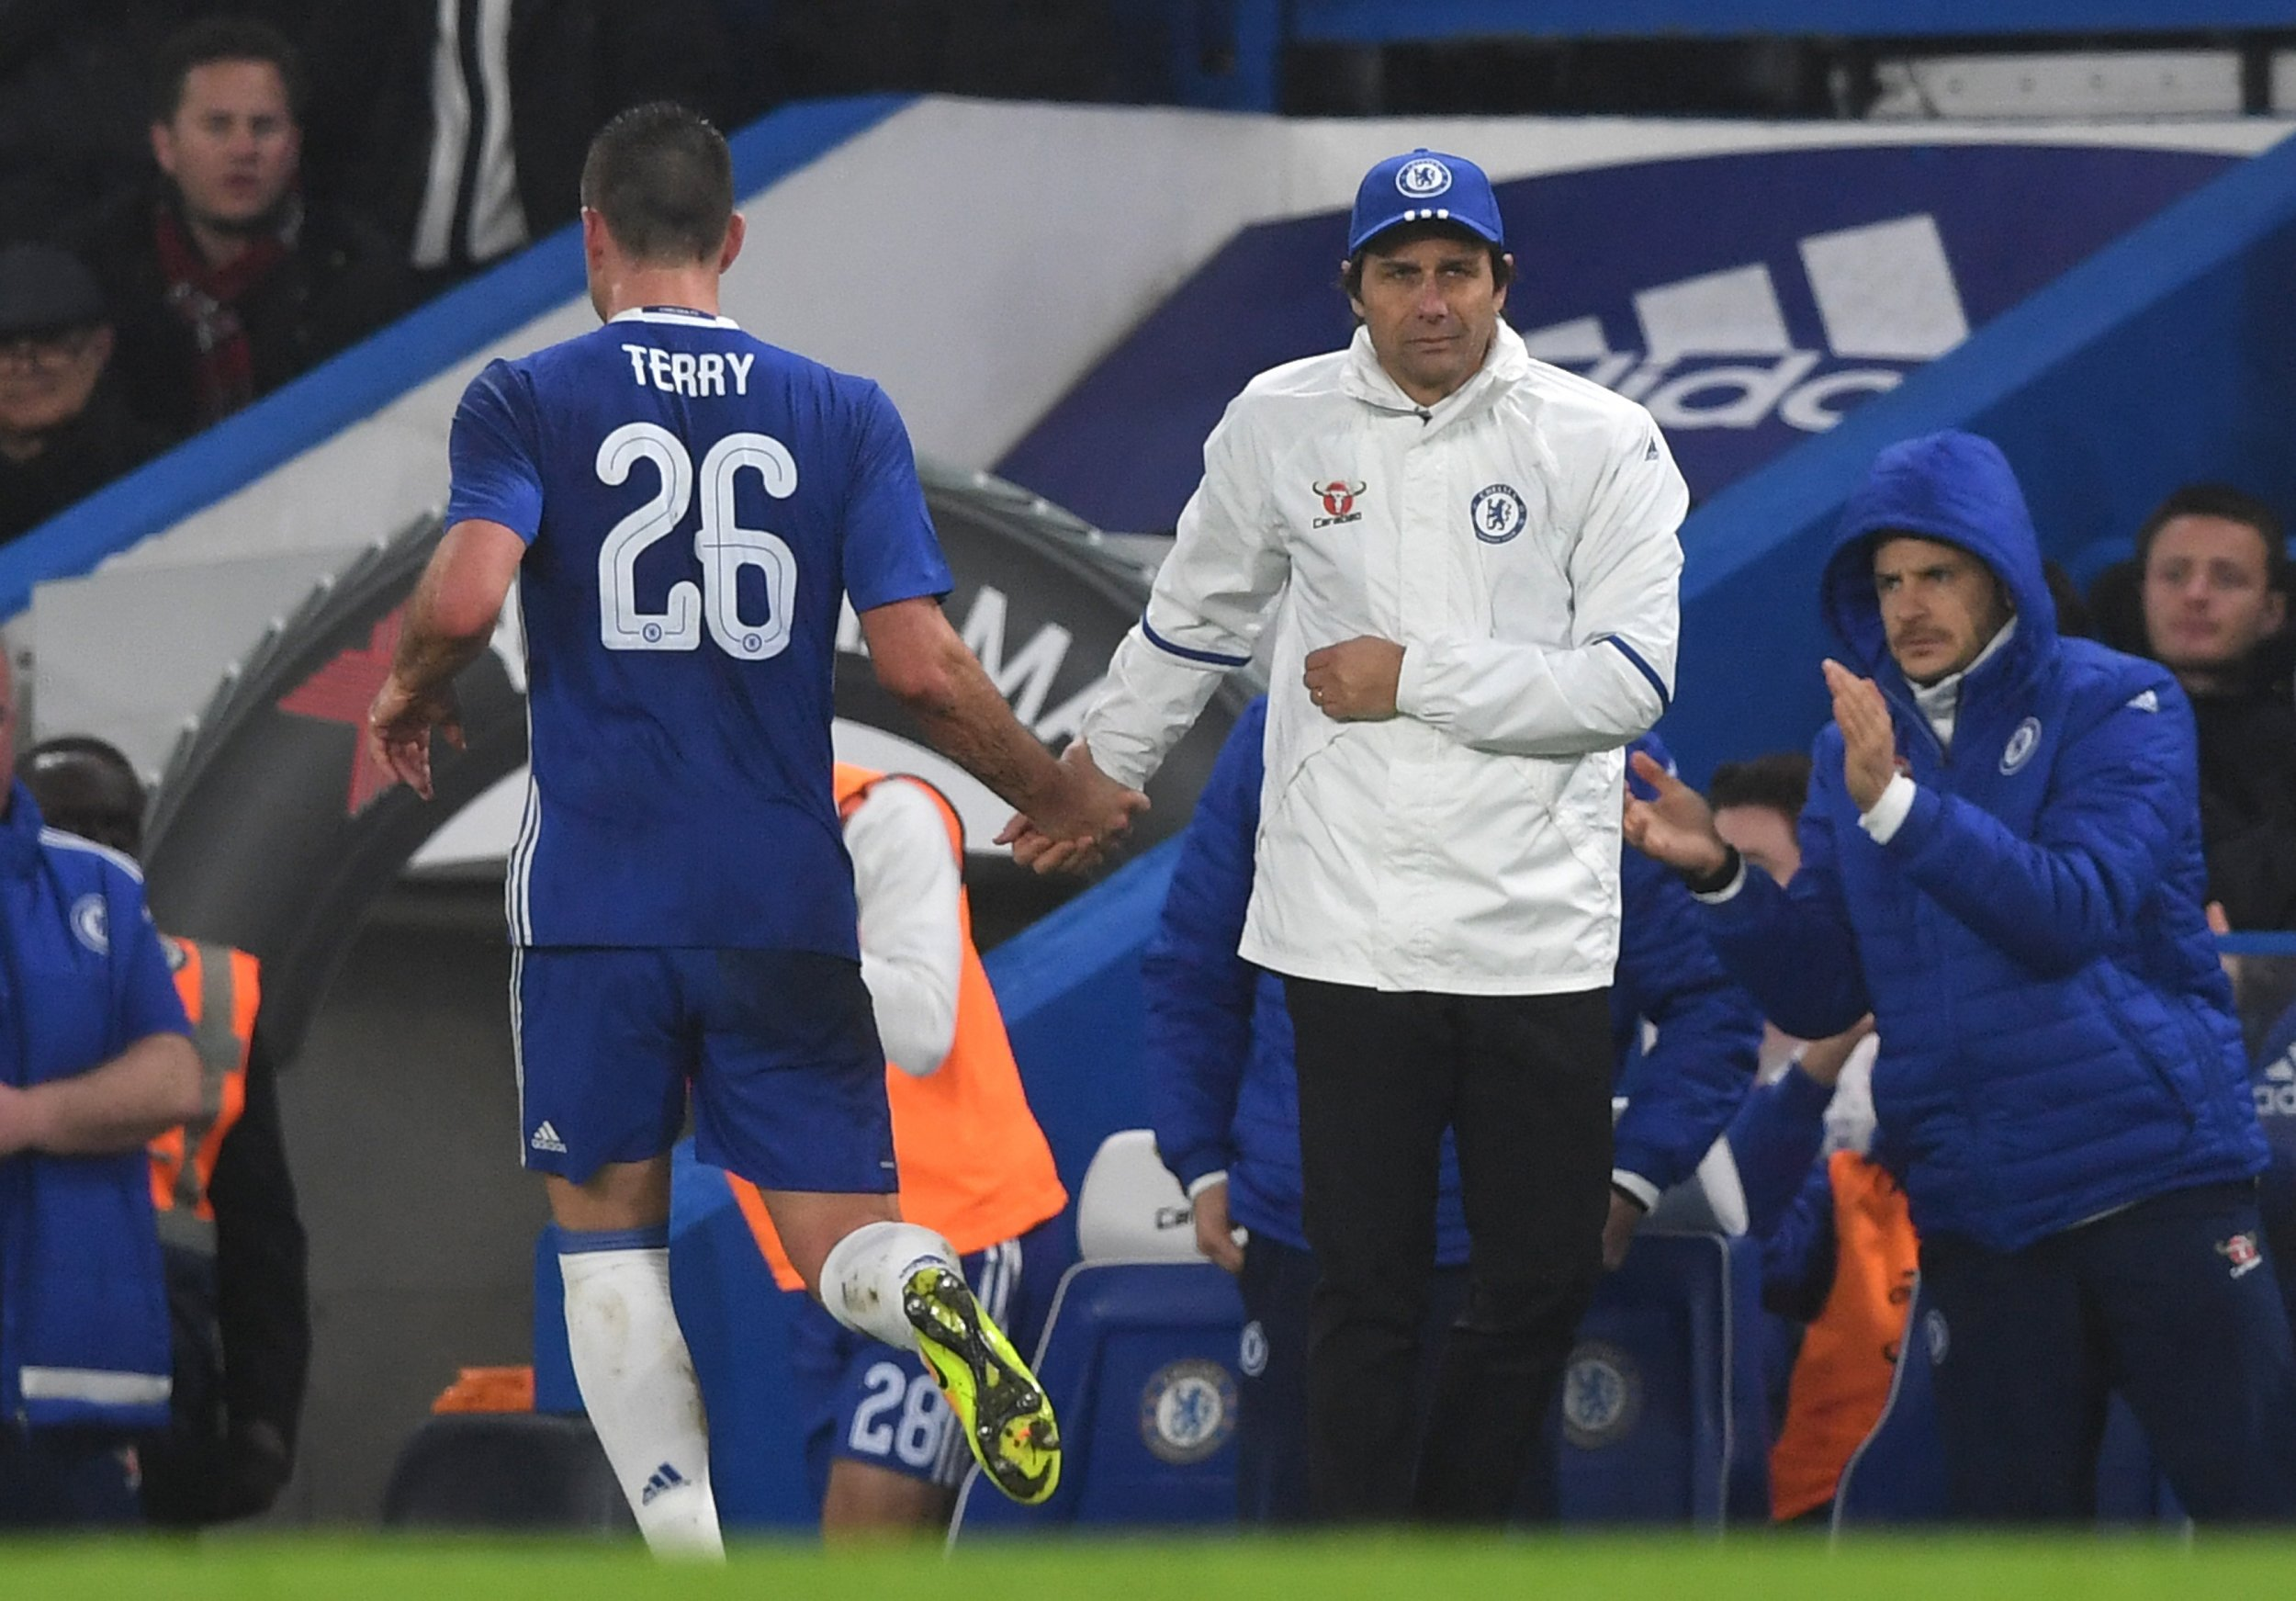 Terry and Conte